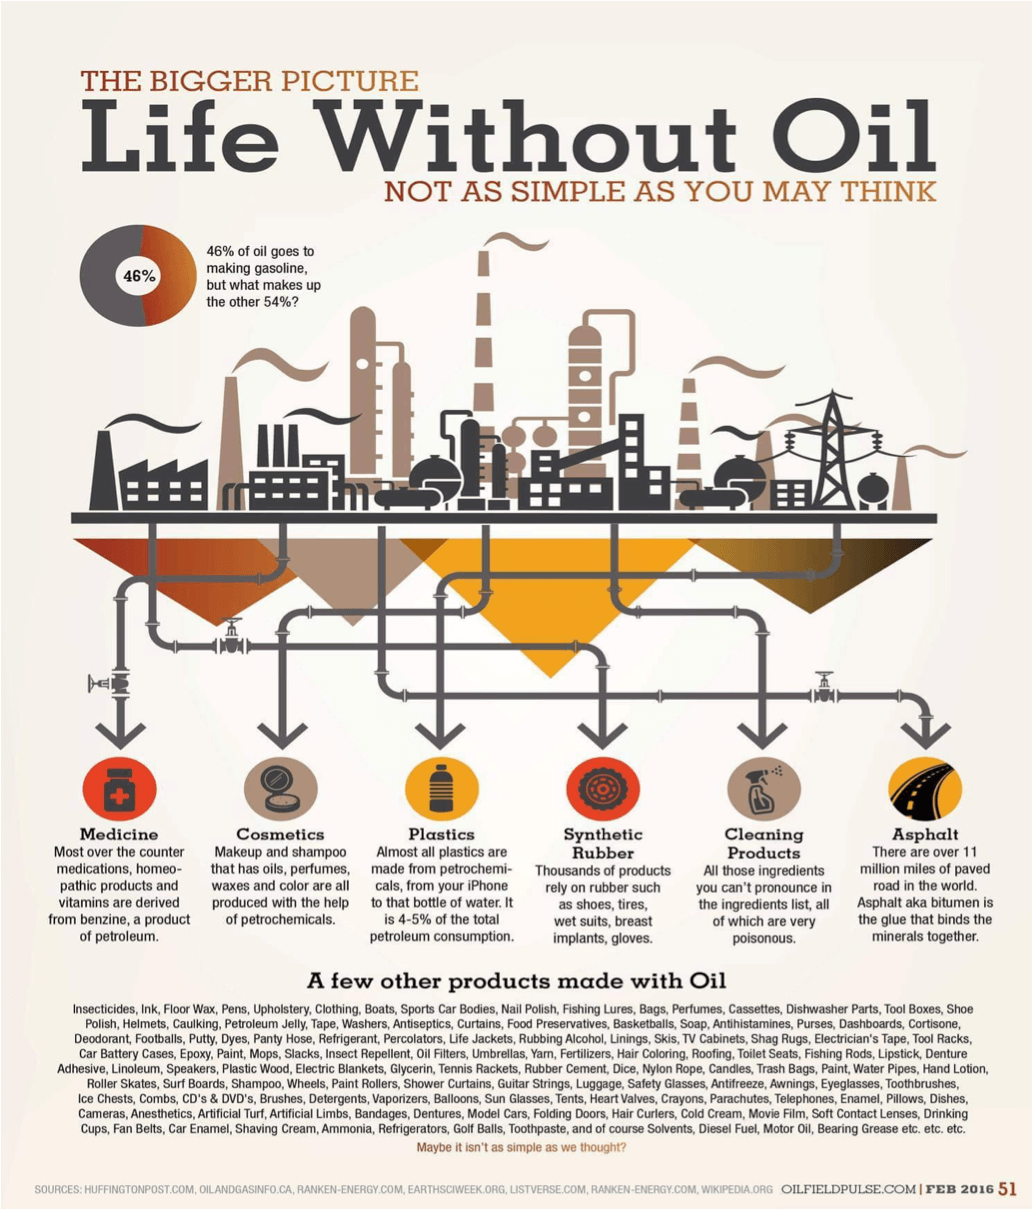 Oil in our lives